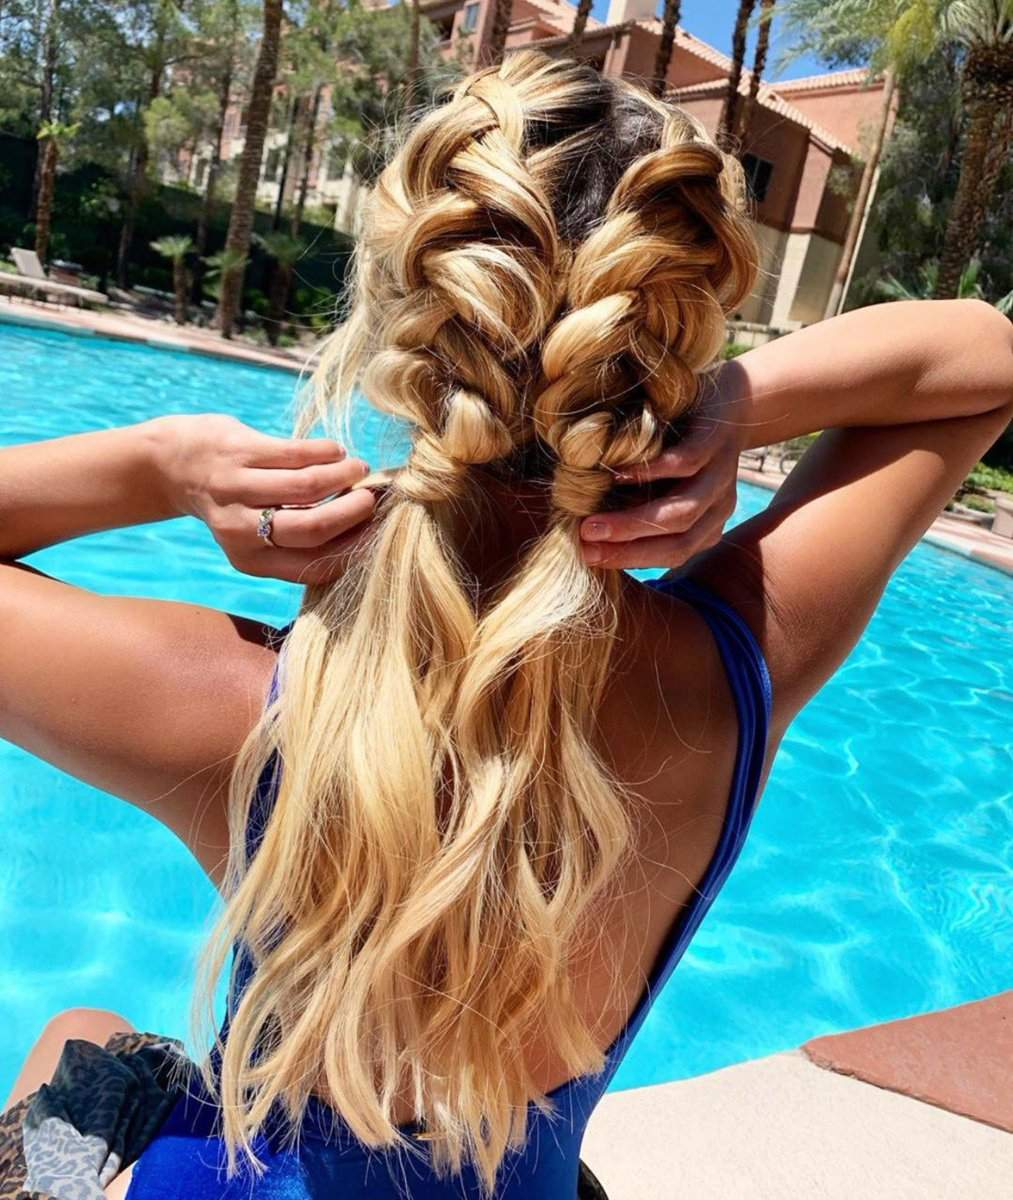 What is the Best Way to Wear Your Ponytail Extensions When Swimming?